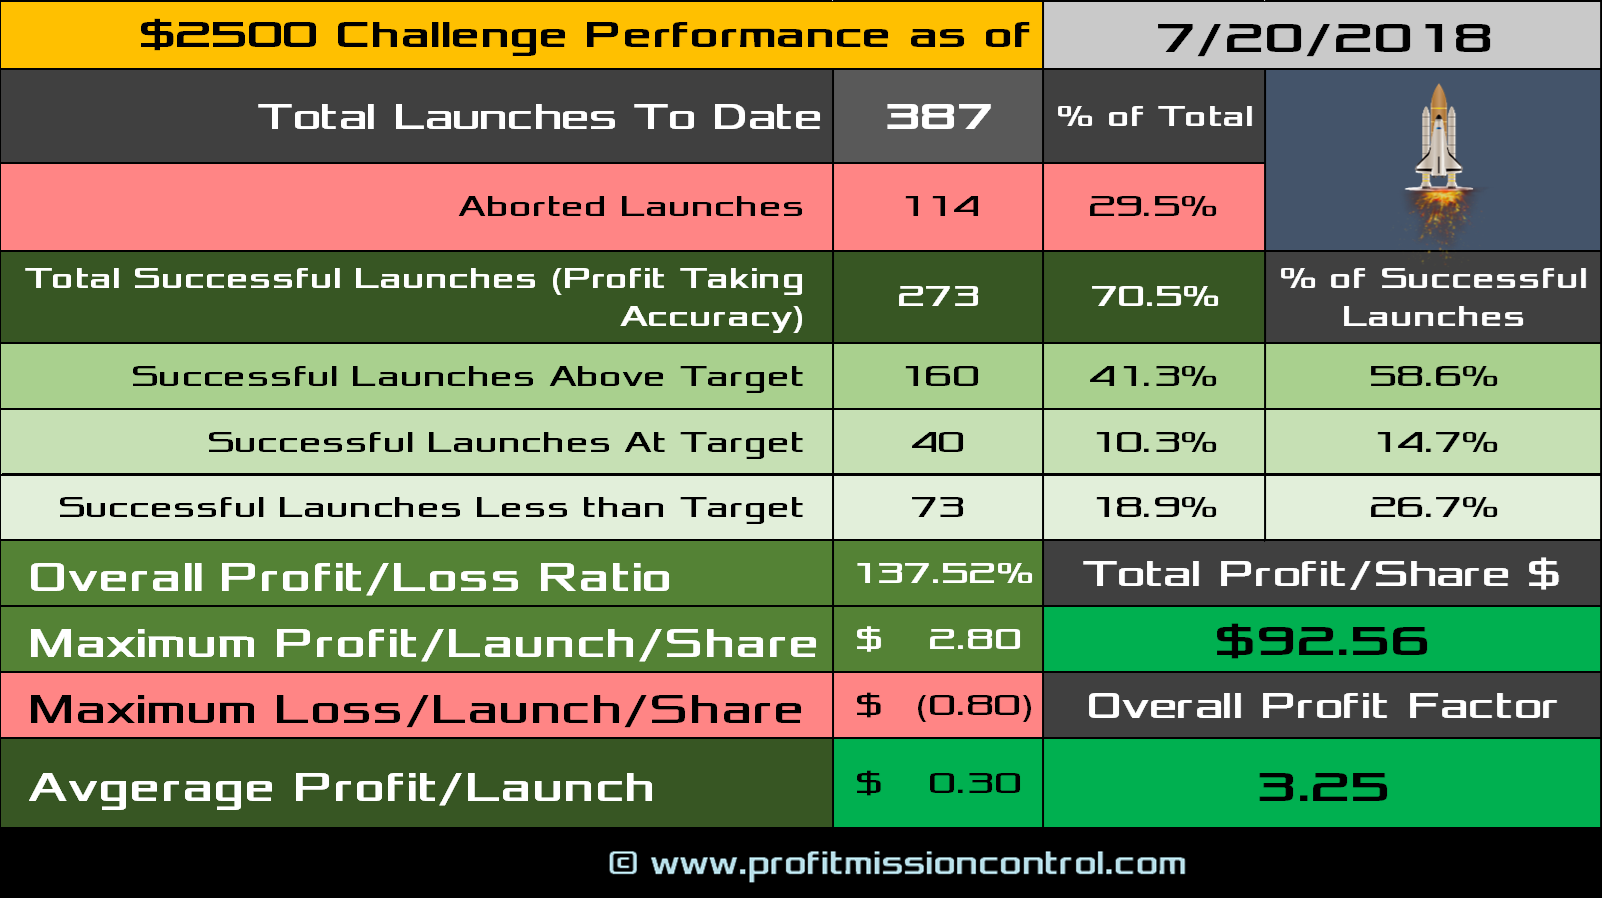 performance card 07-20-2018